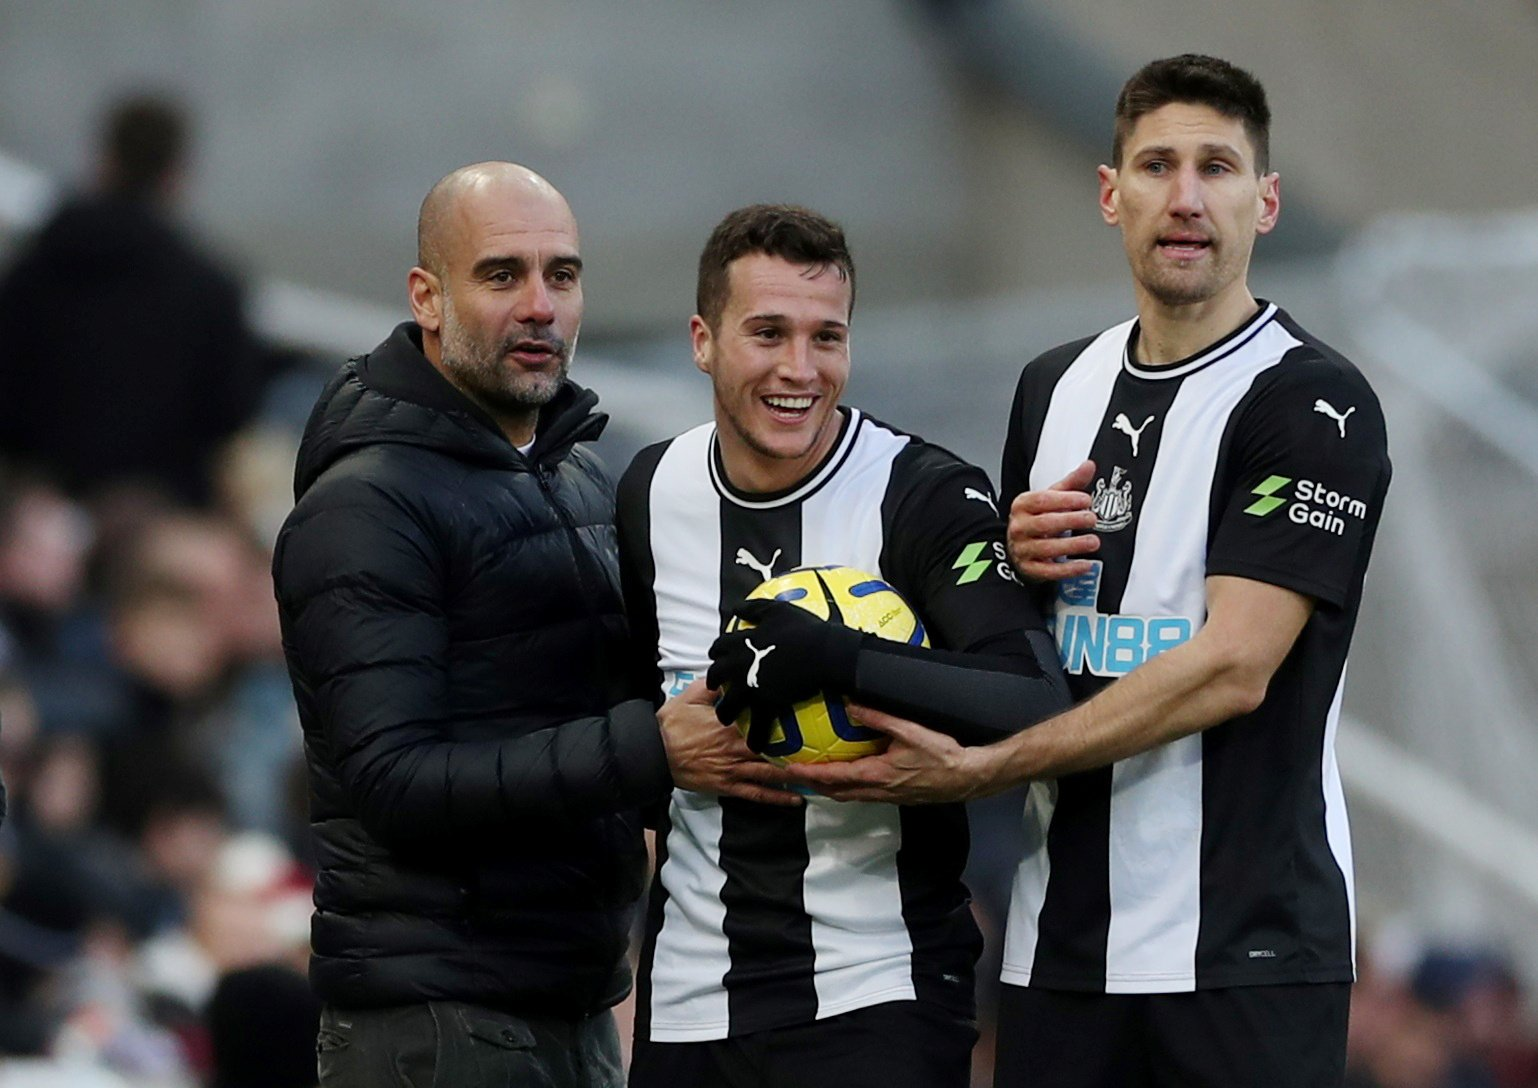 Newcastle United: Fans praise Federico Fernandez after making Premier League team of the week